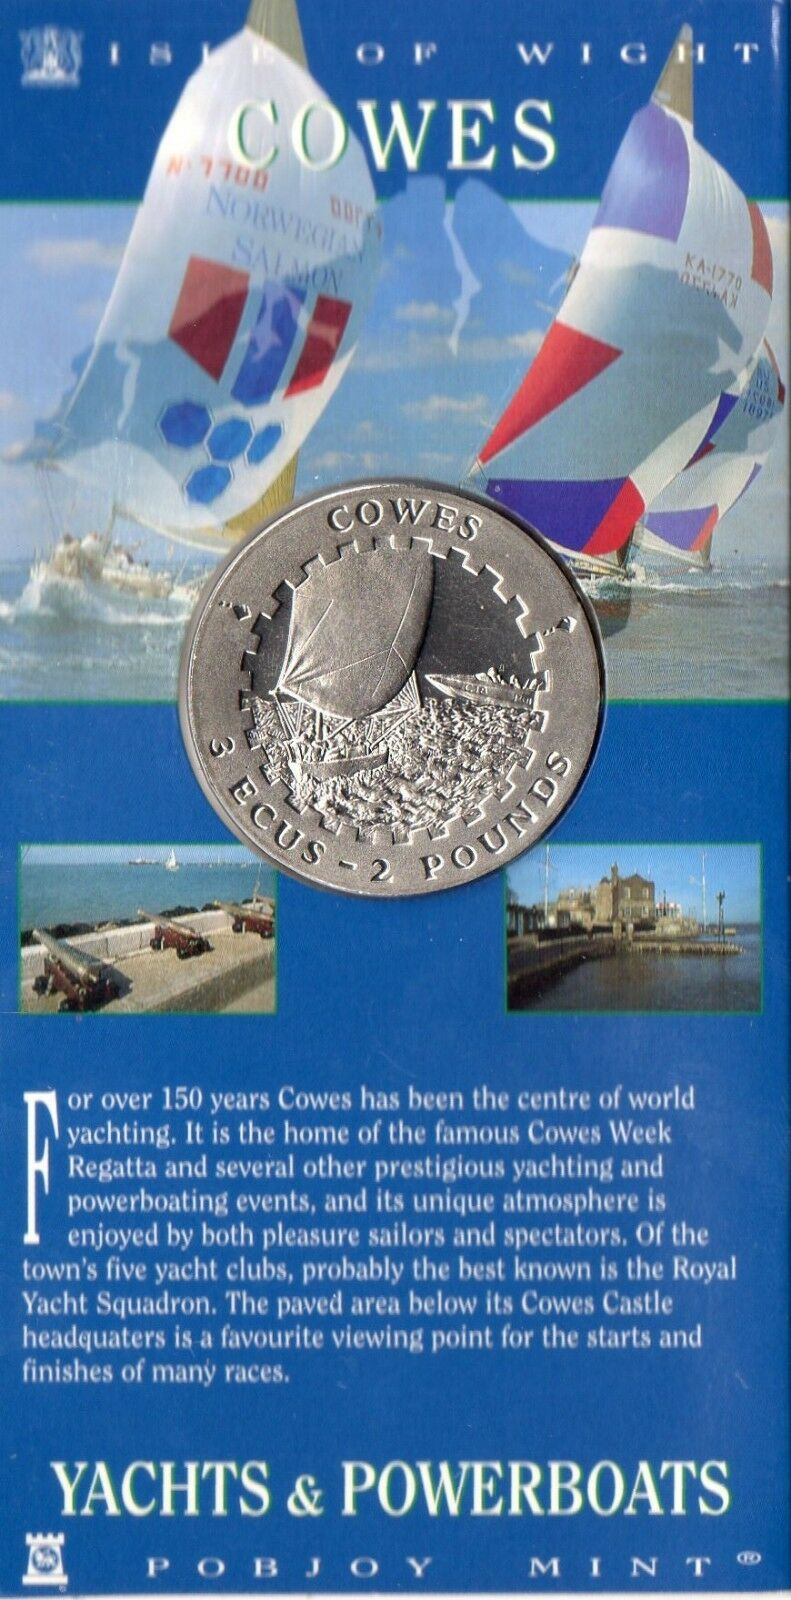 COWES - Yachts &energiabarcas - Isle of Wight - 3 ECU Coin - Still in autod - 1996